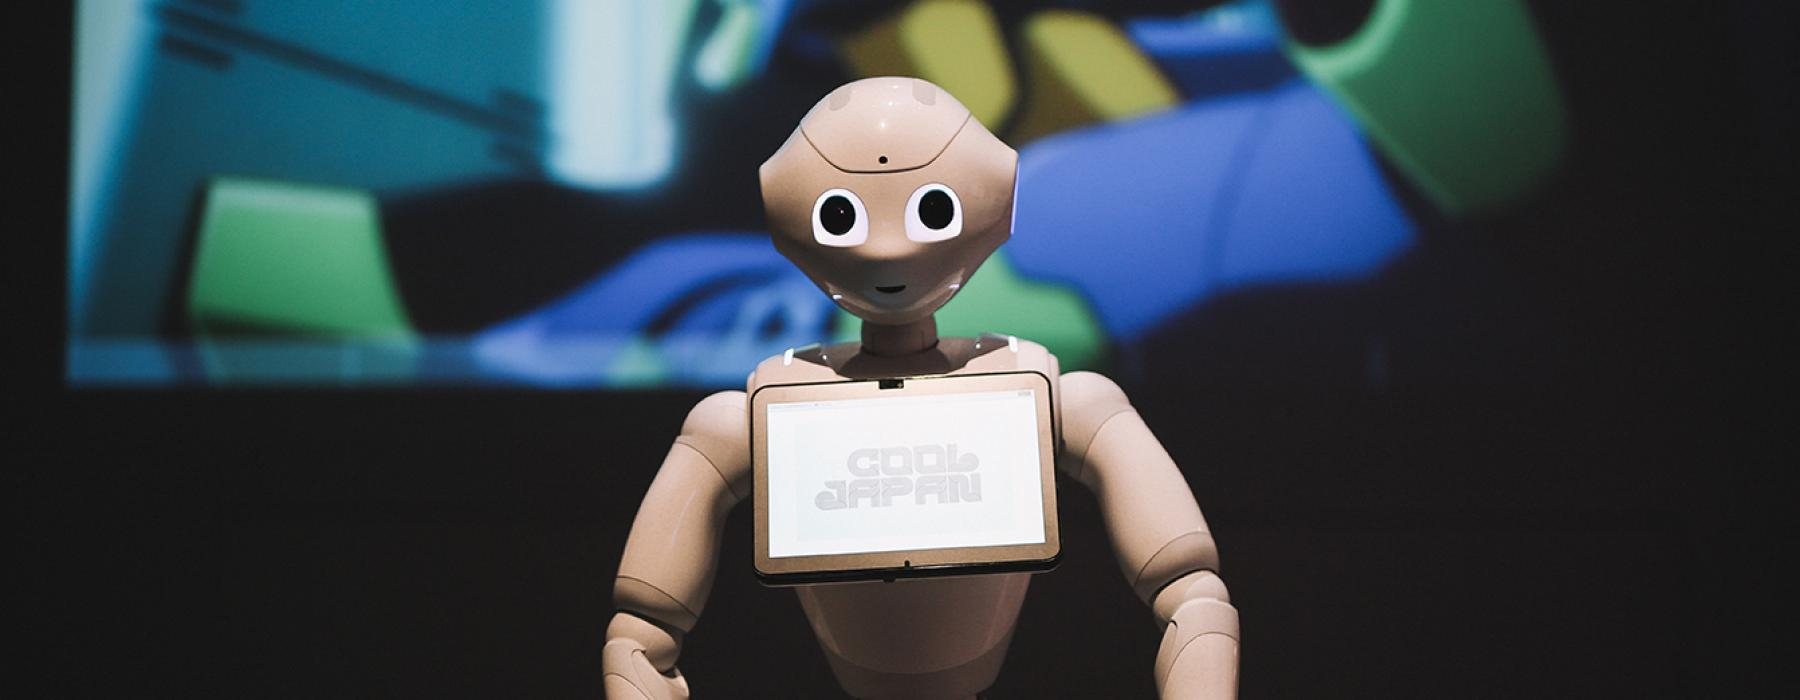 Pepper, robot, cool japan, tropenmuseum